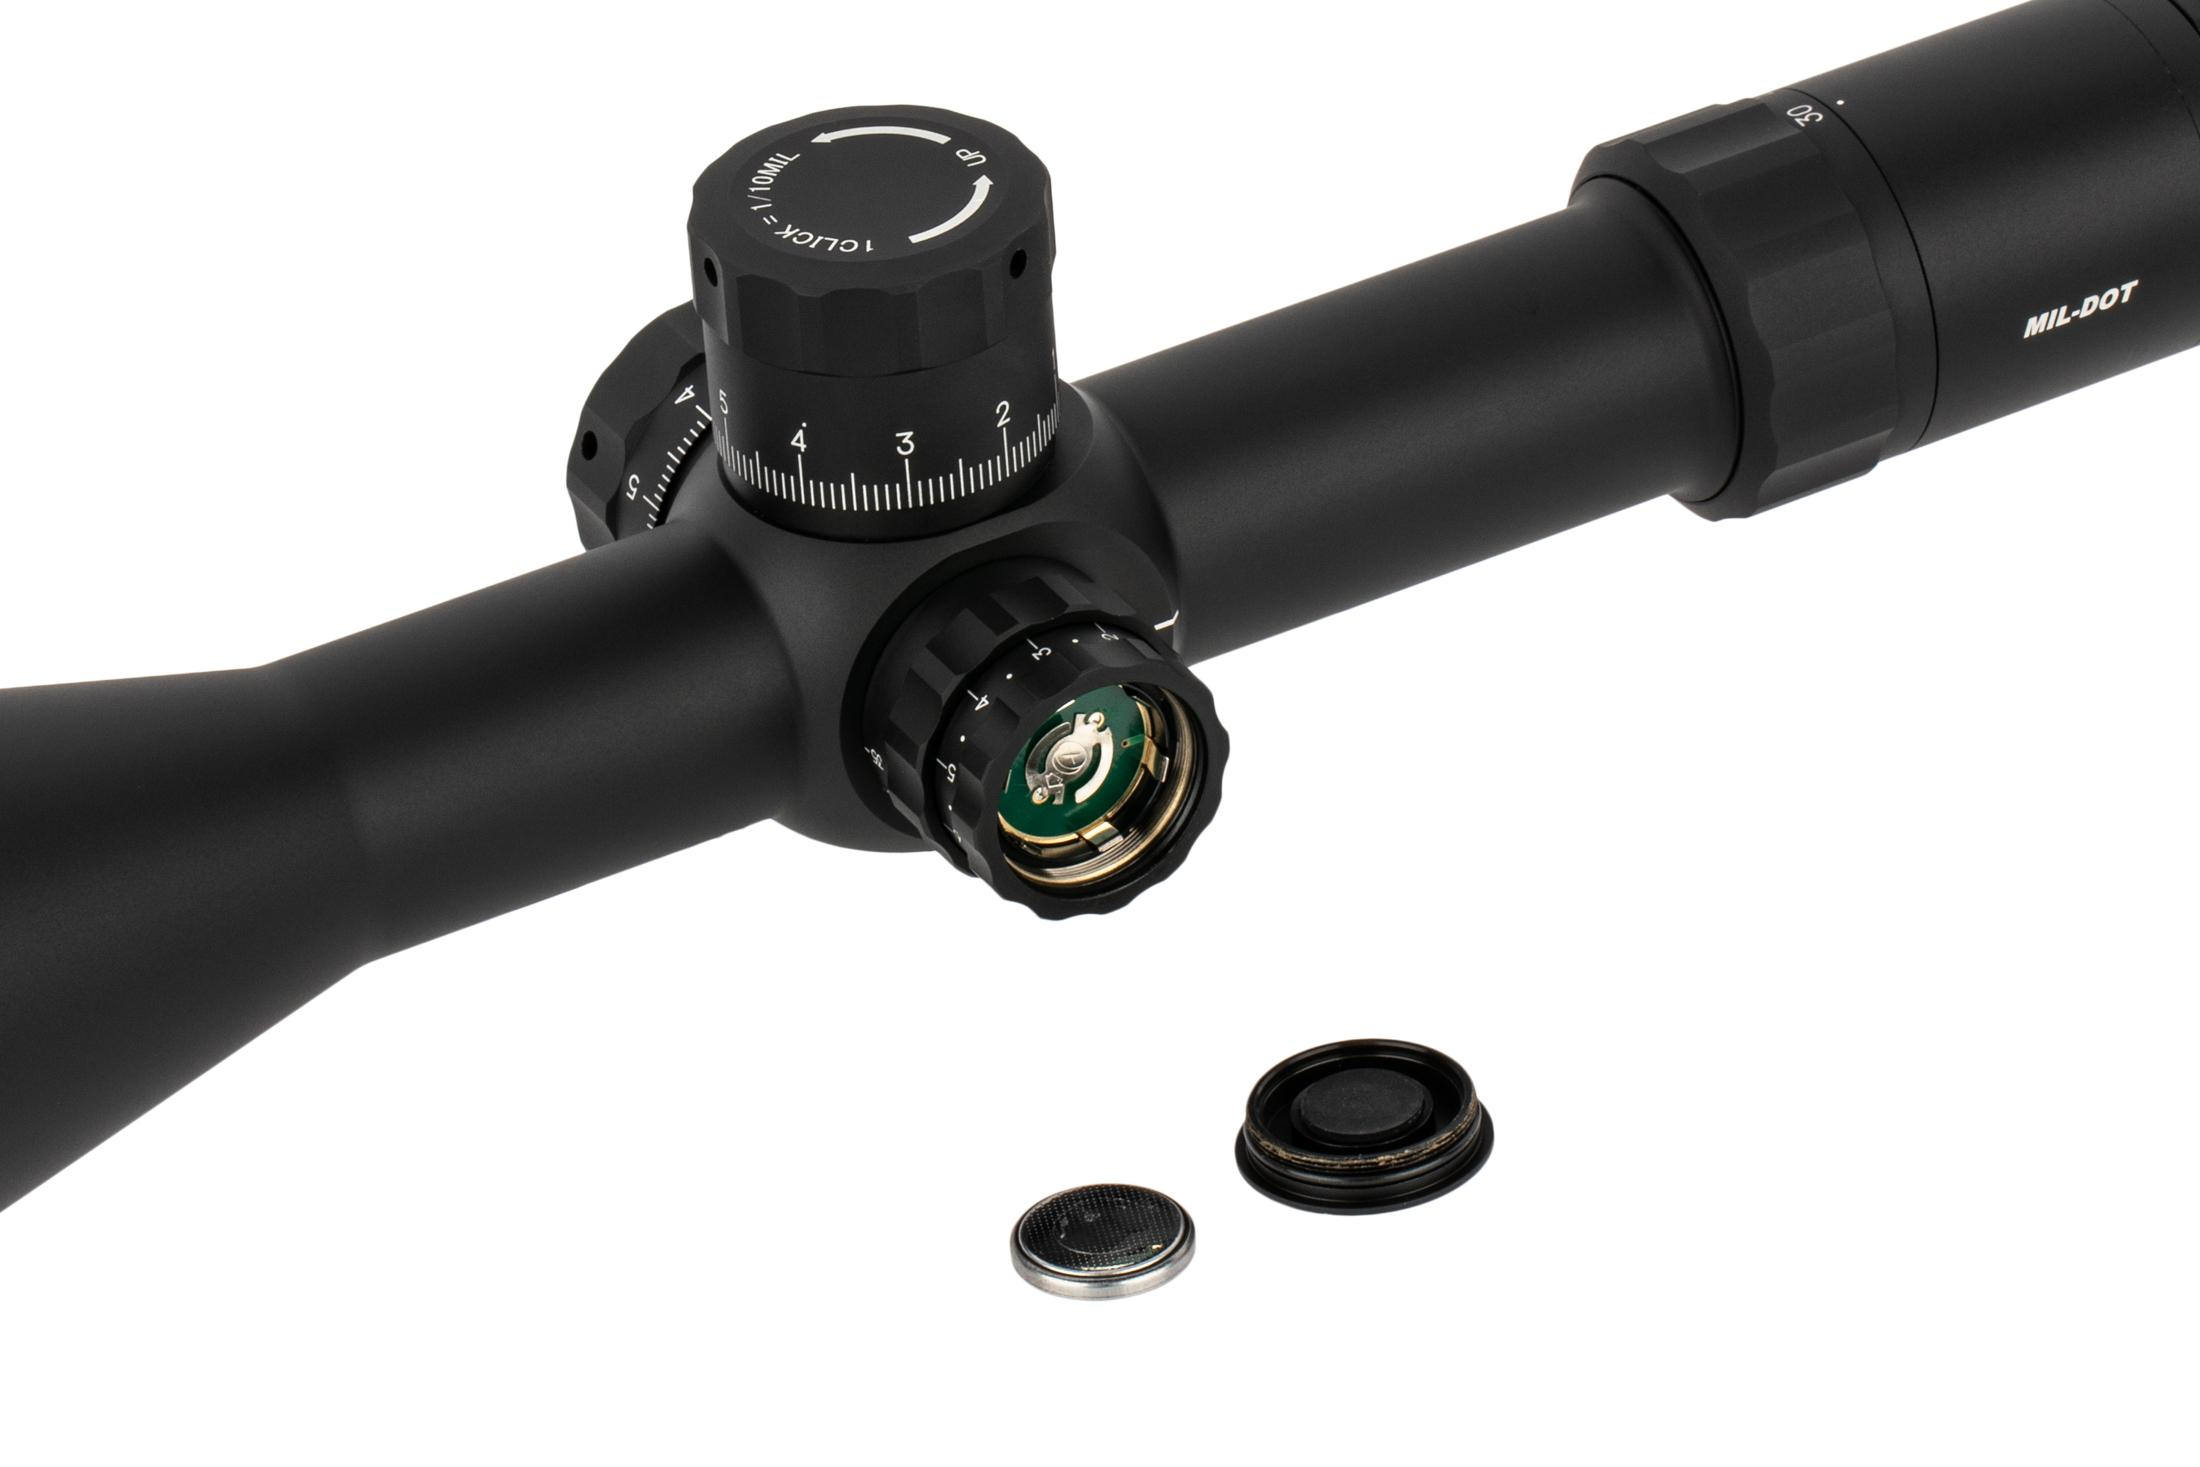 Primary Arms PLx 6-30x56mm FFP Rifle Scope - Illuminated MIL-Dot